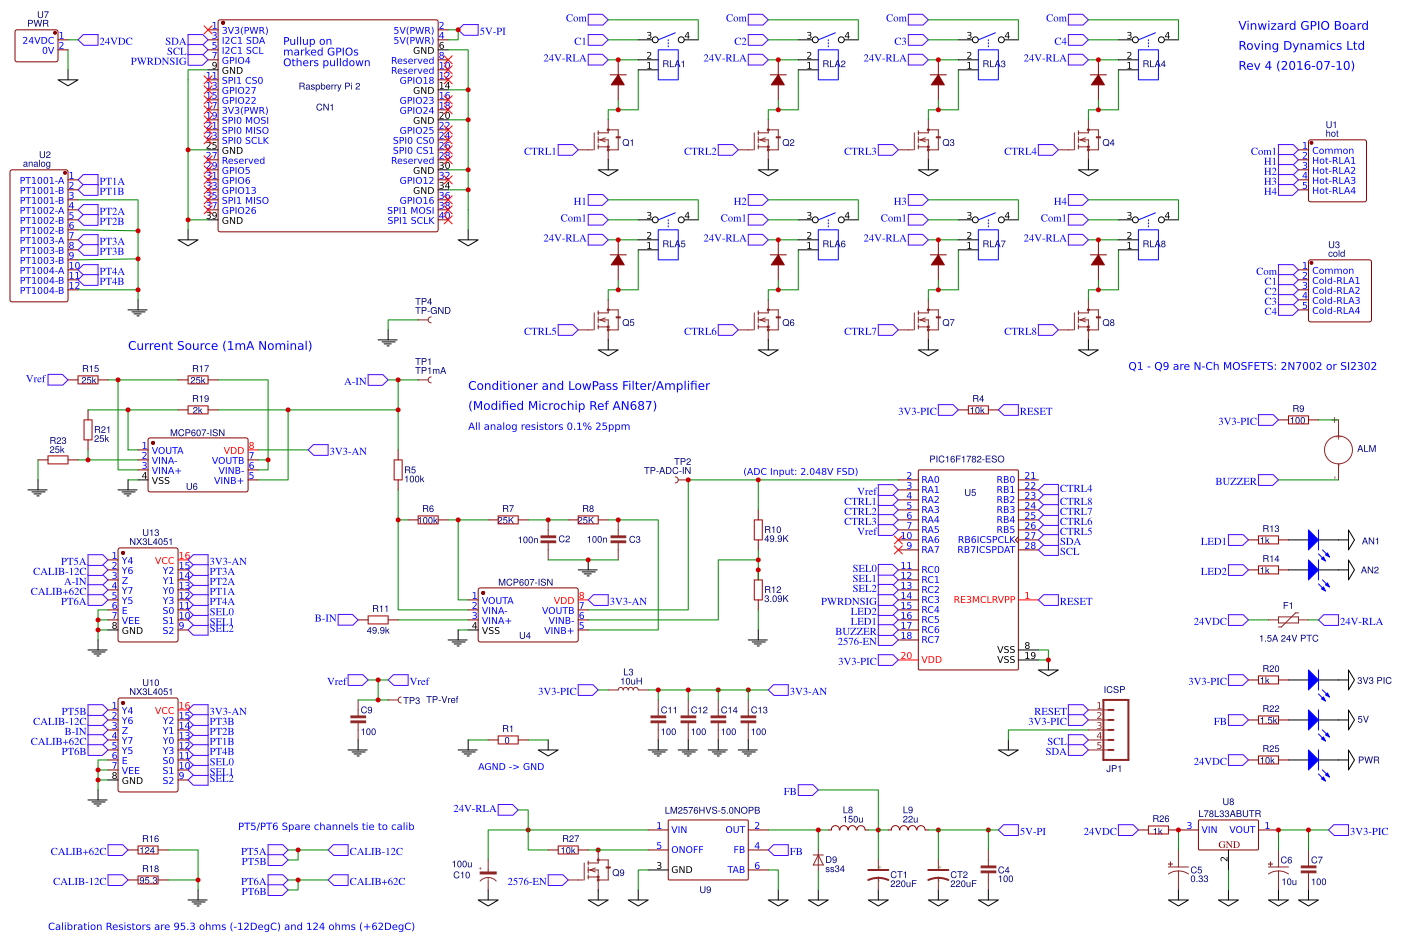 Schematic Version 5